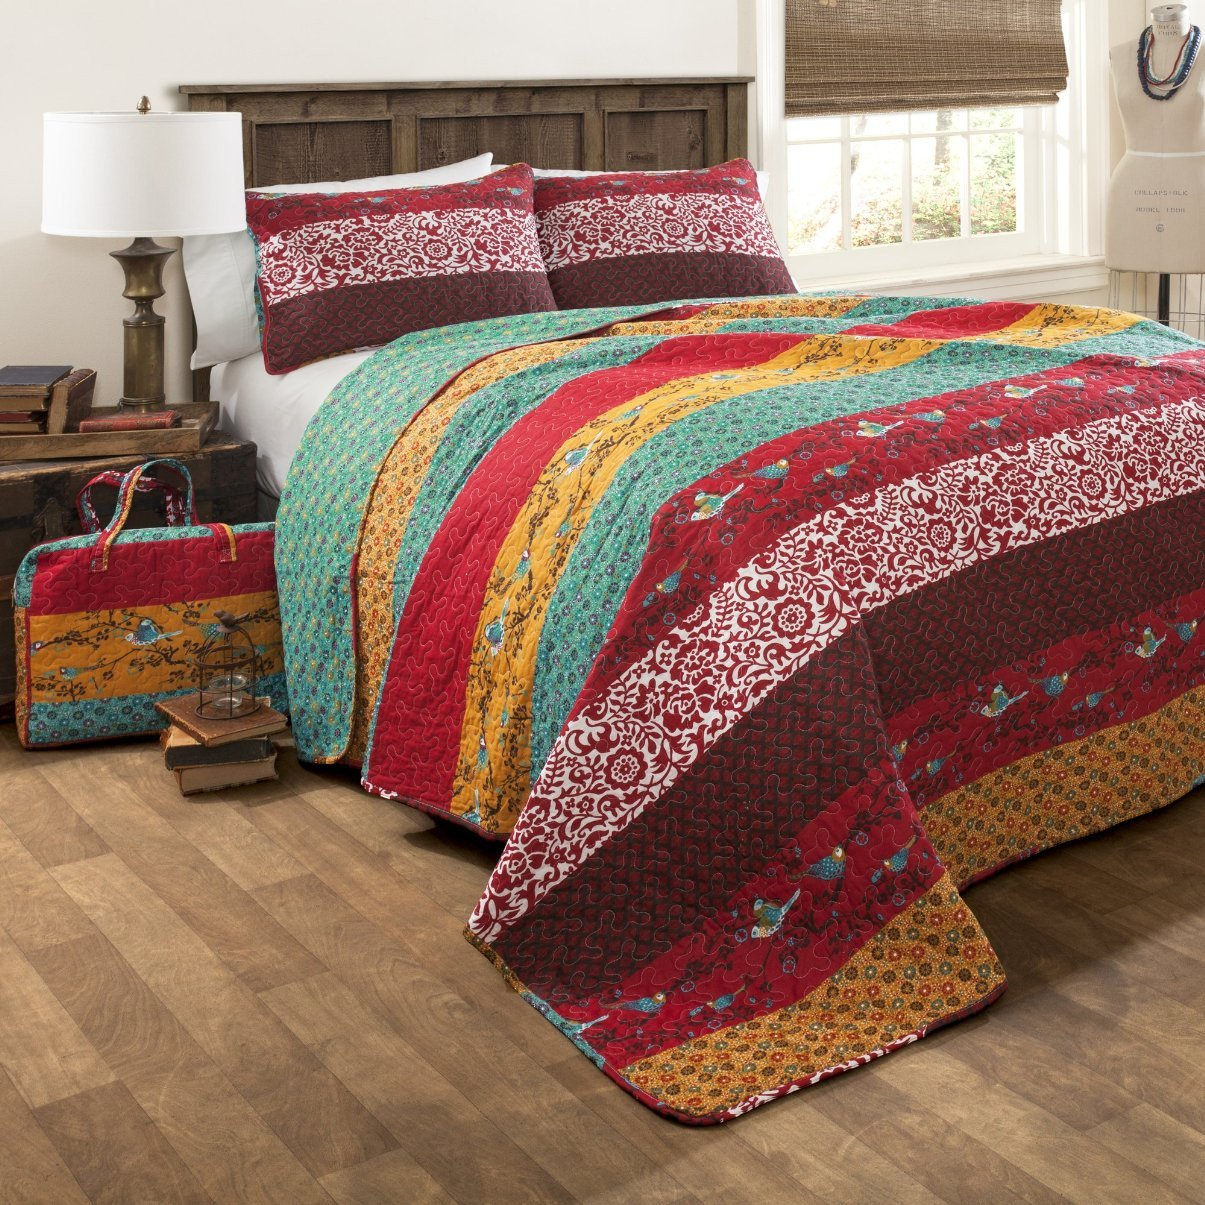 bedroom quilt and for pattern wood quilts rug your cozy blue headboard with bedding bed red traditional plus design floor quilted cowhide